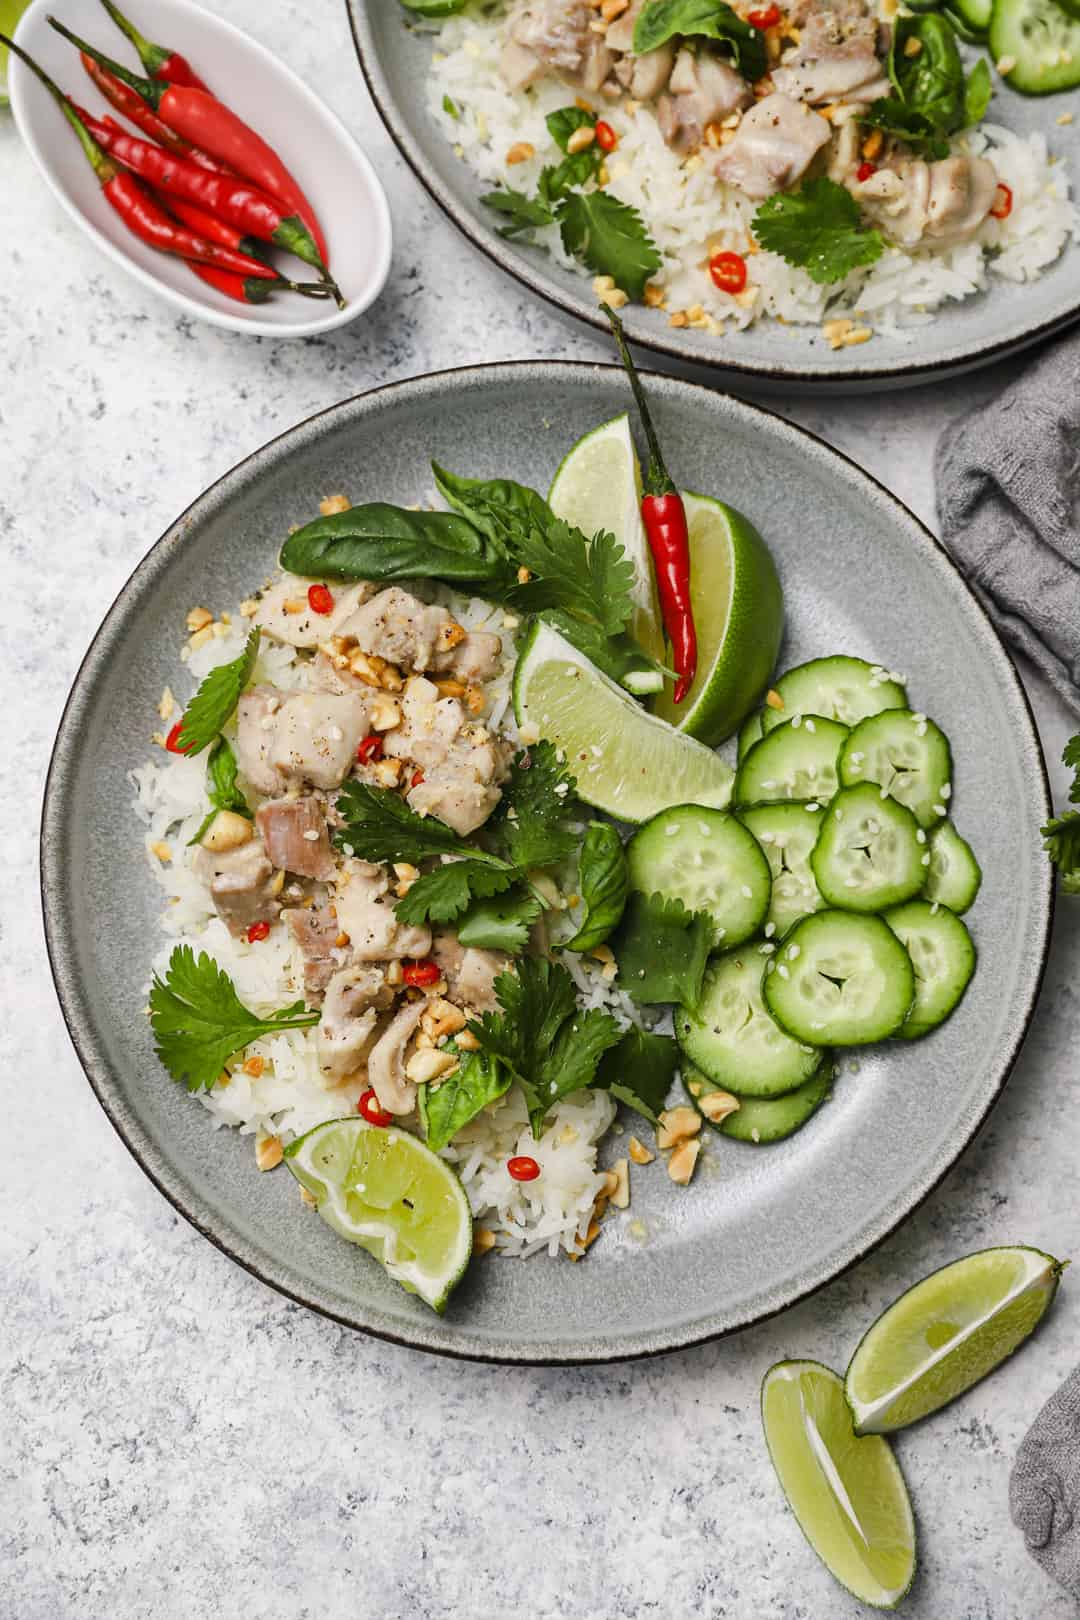 Lemongrass Thai chicken with chilies and cilantro over jasmine rice